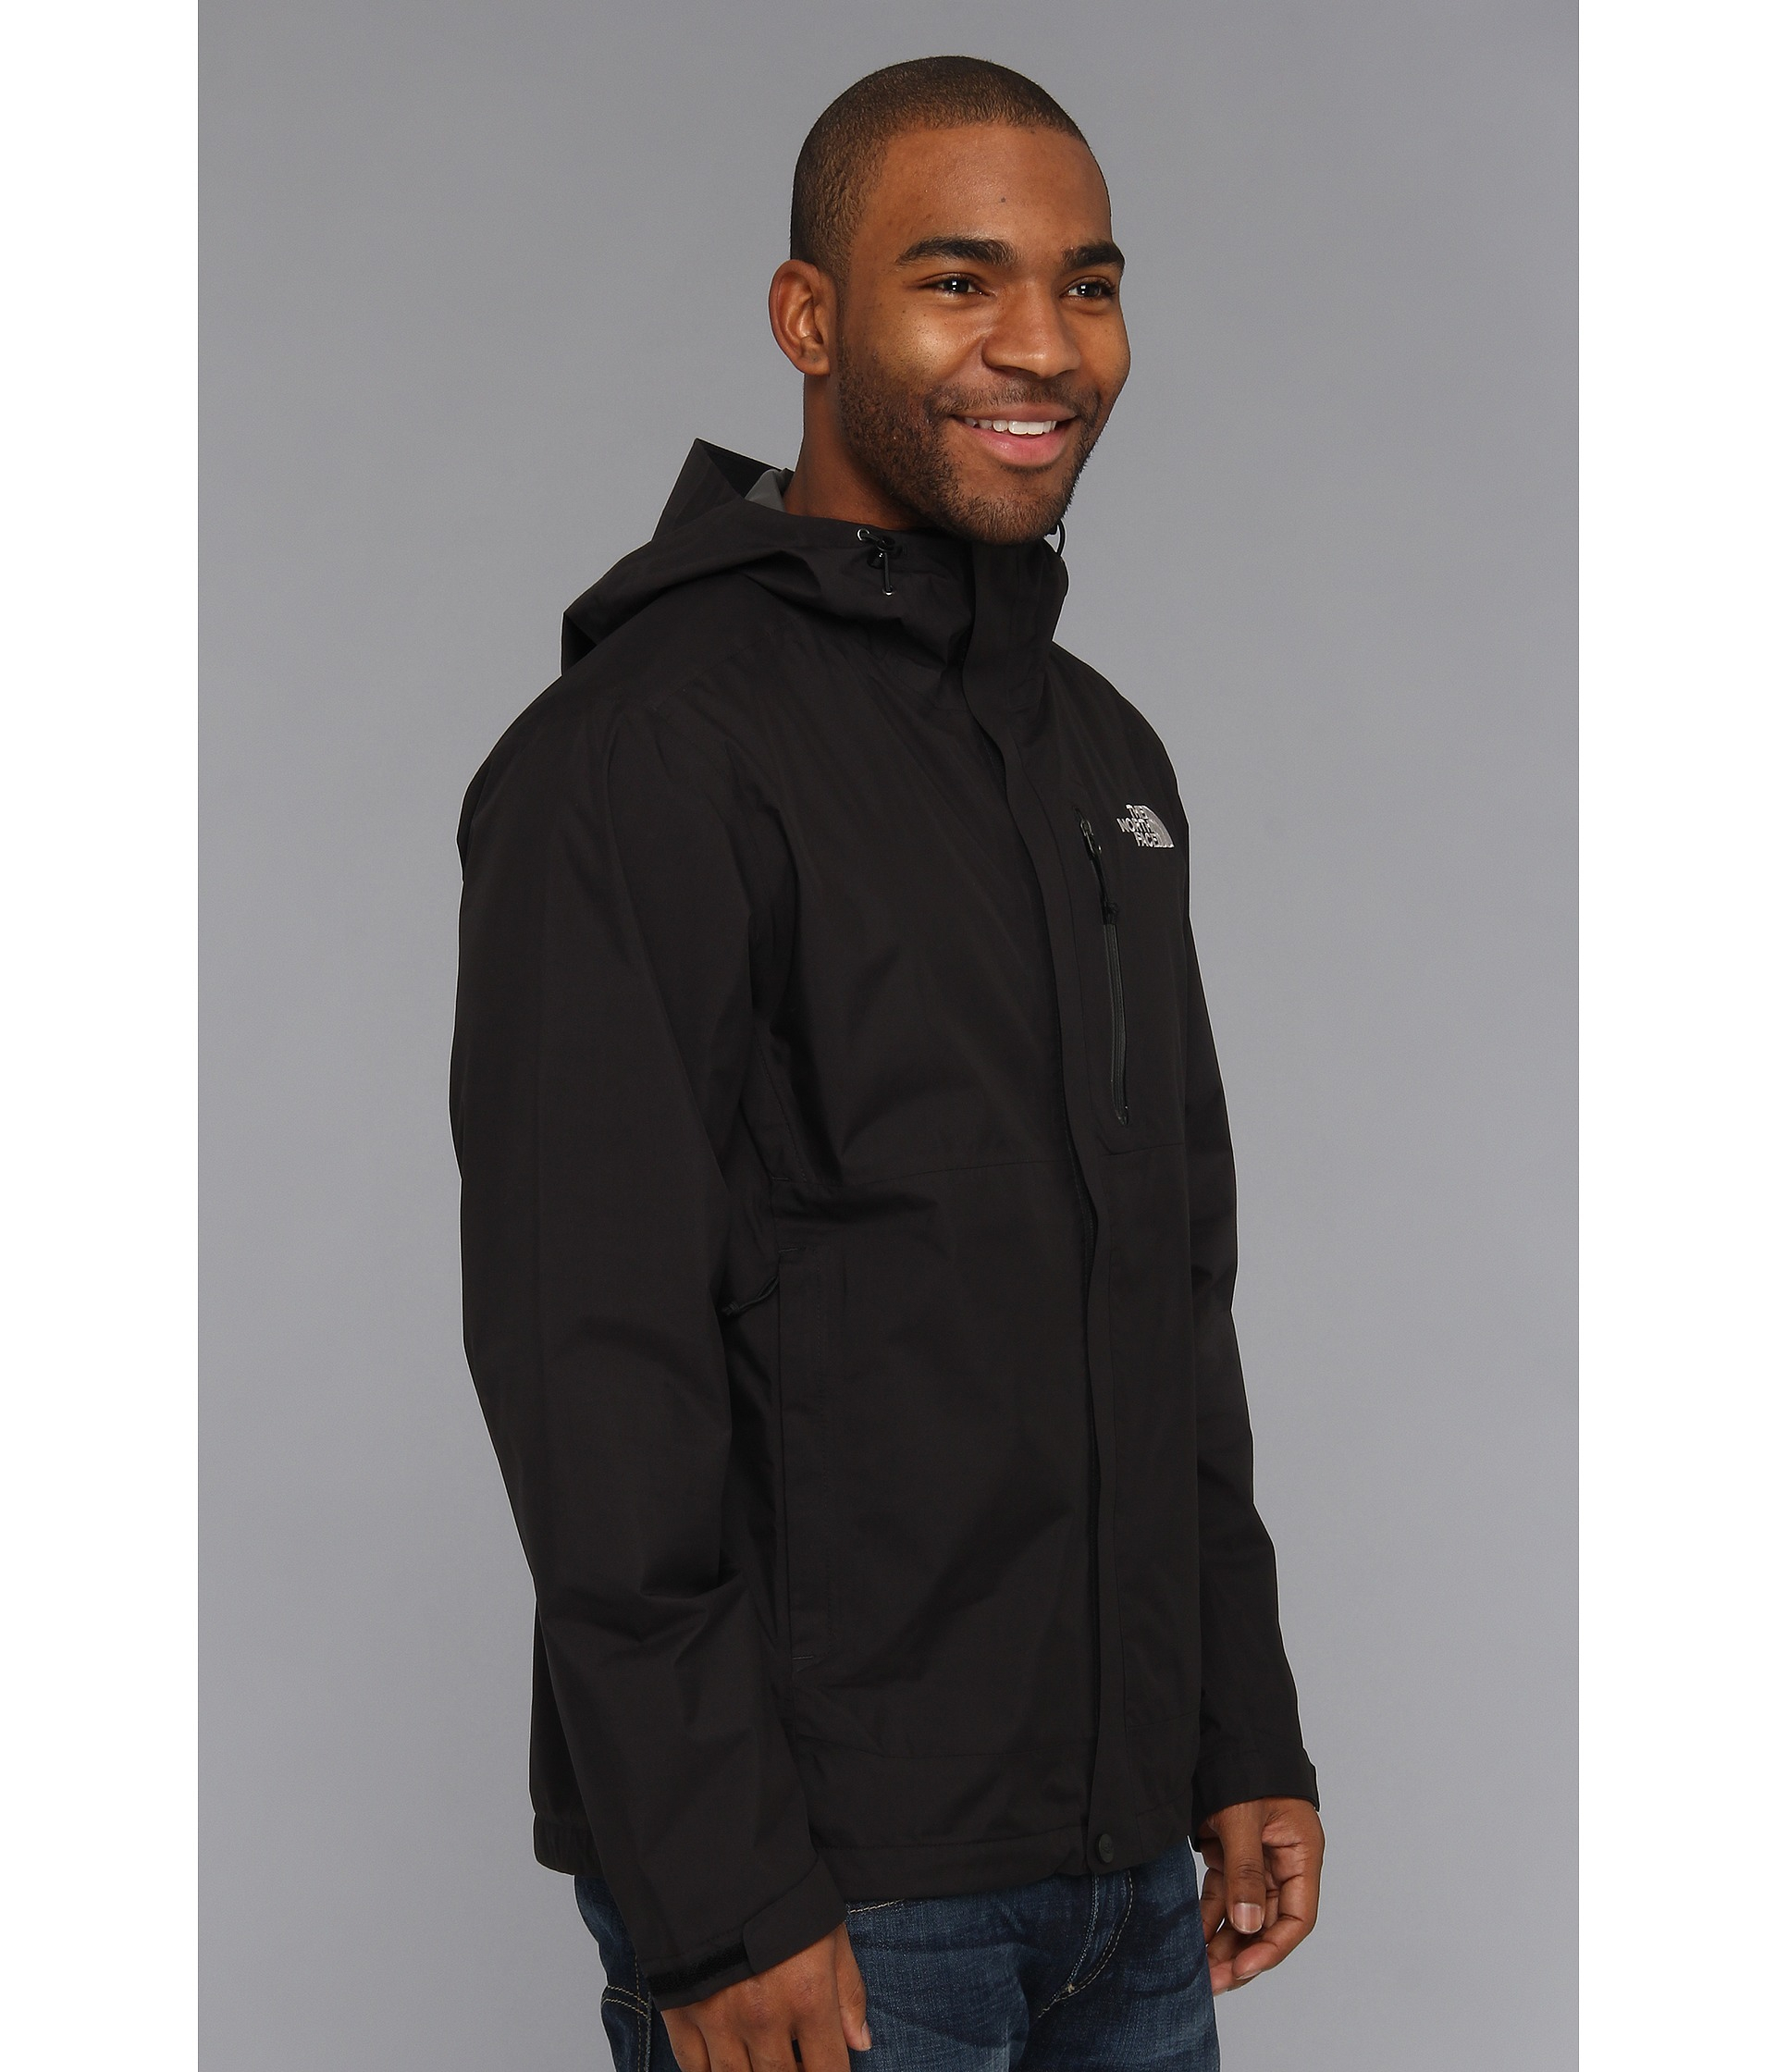 Schoudertas The North Face : The north face dryzzle jacket in black for men lyst